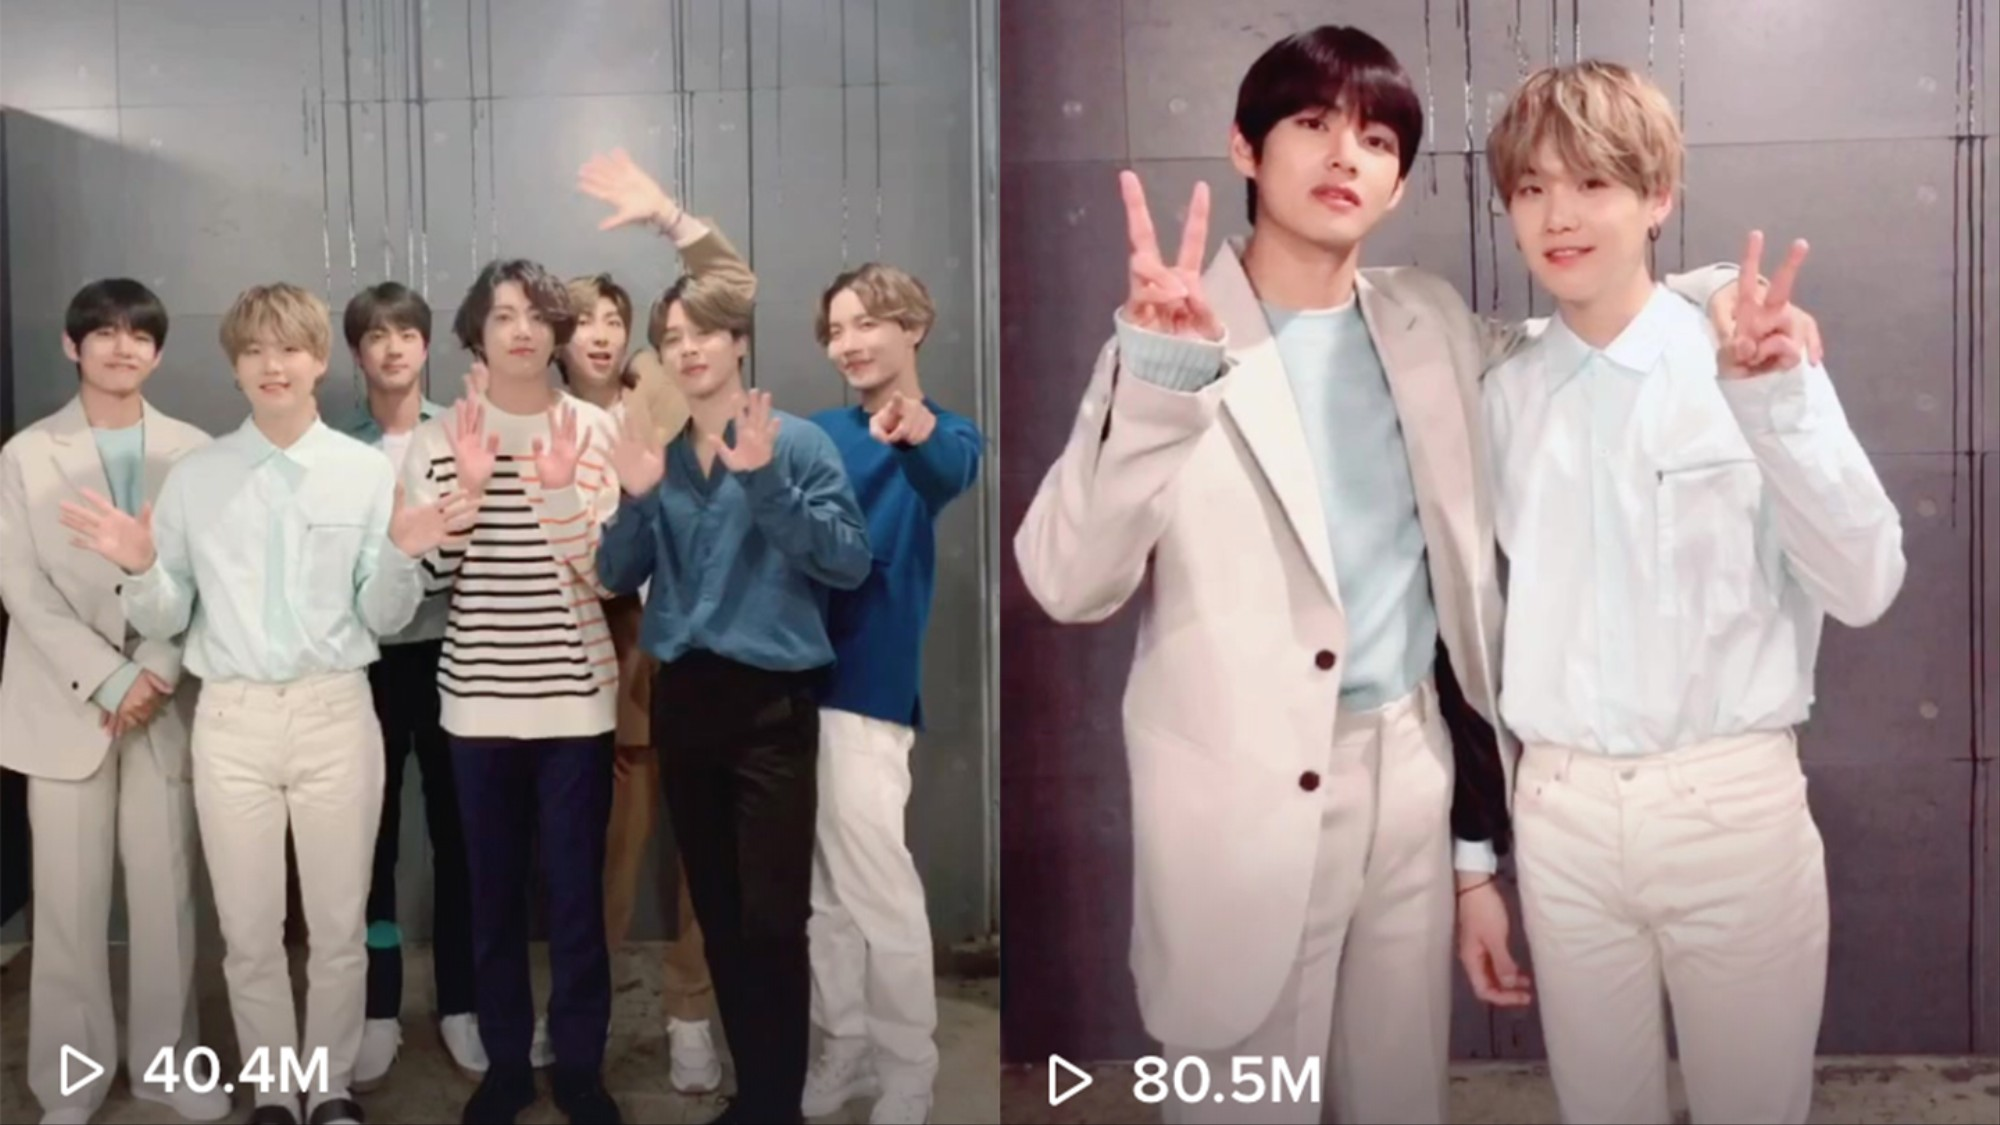 Bts Are Set To Go Down In Tiktok History With Their New Single I D